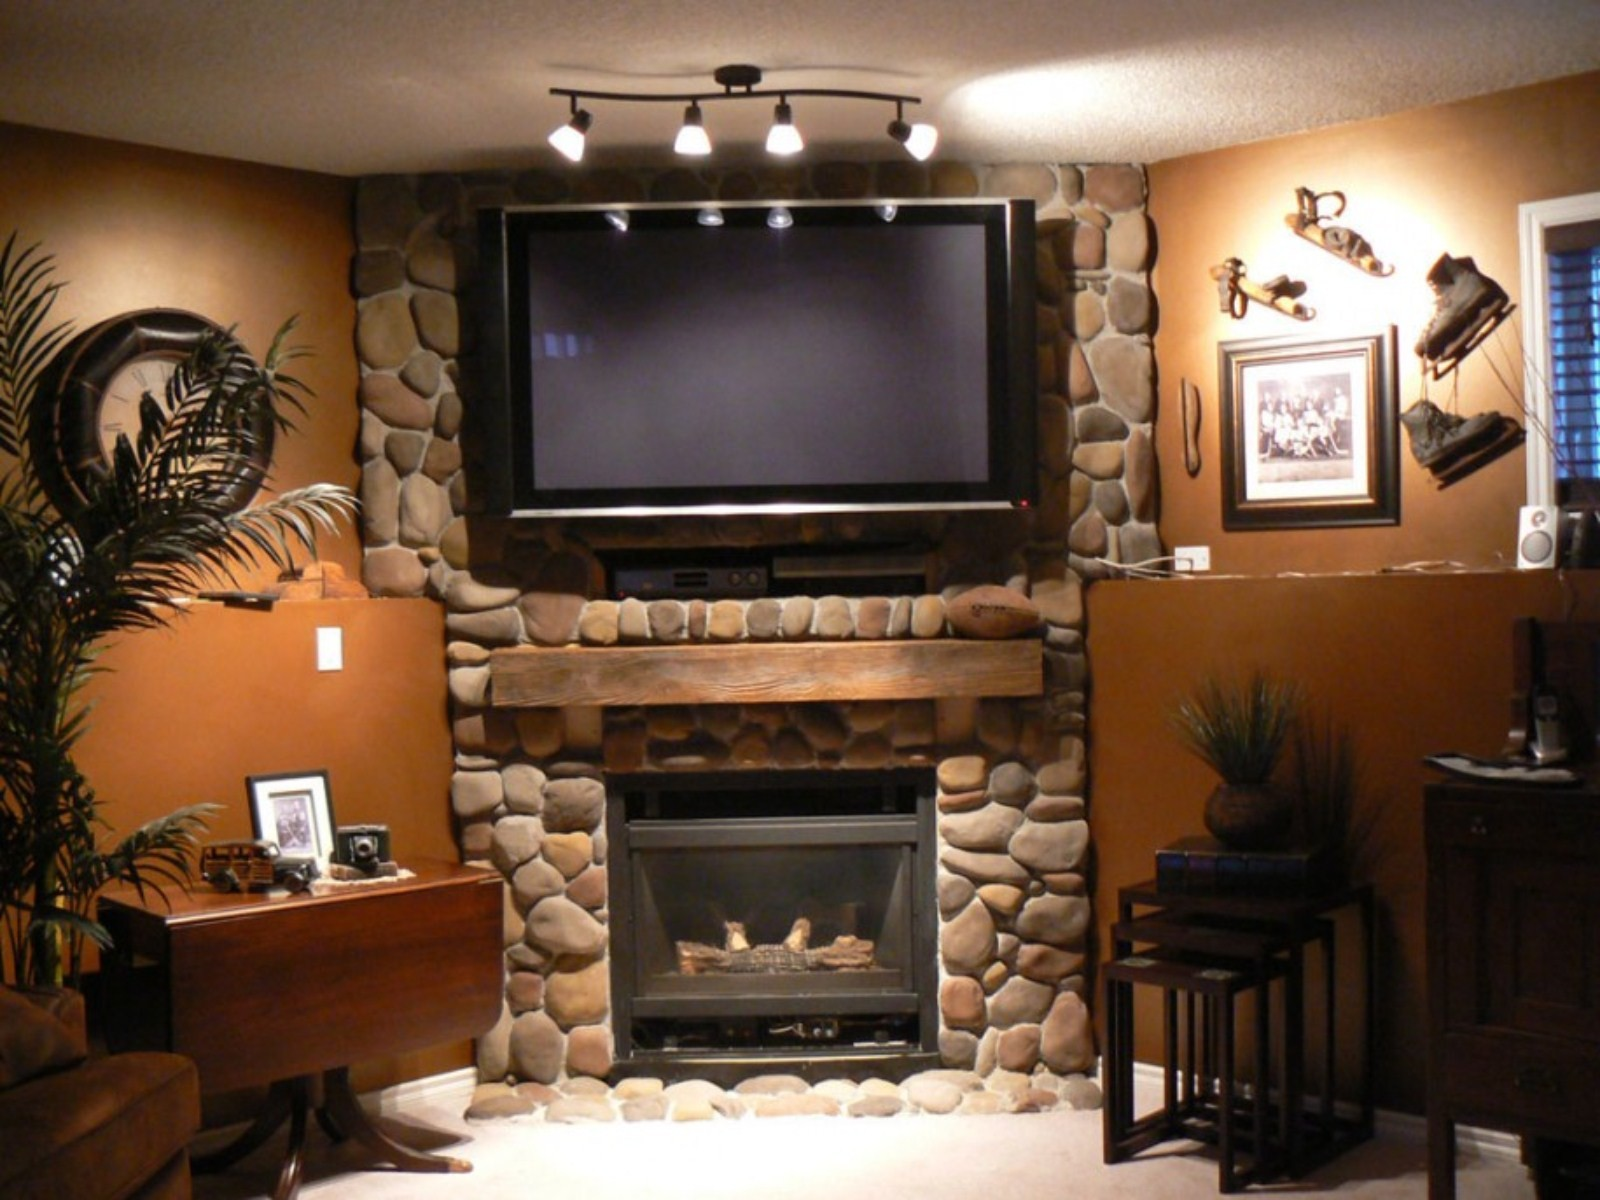 Corner-Wall-Mount-for-Flat-Screen-TV-with-Above-Stone-Fireplace-Design-Ideas.jpg